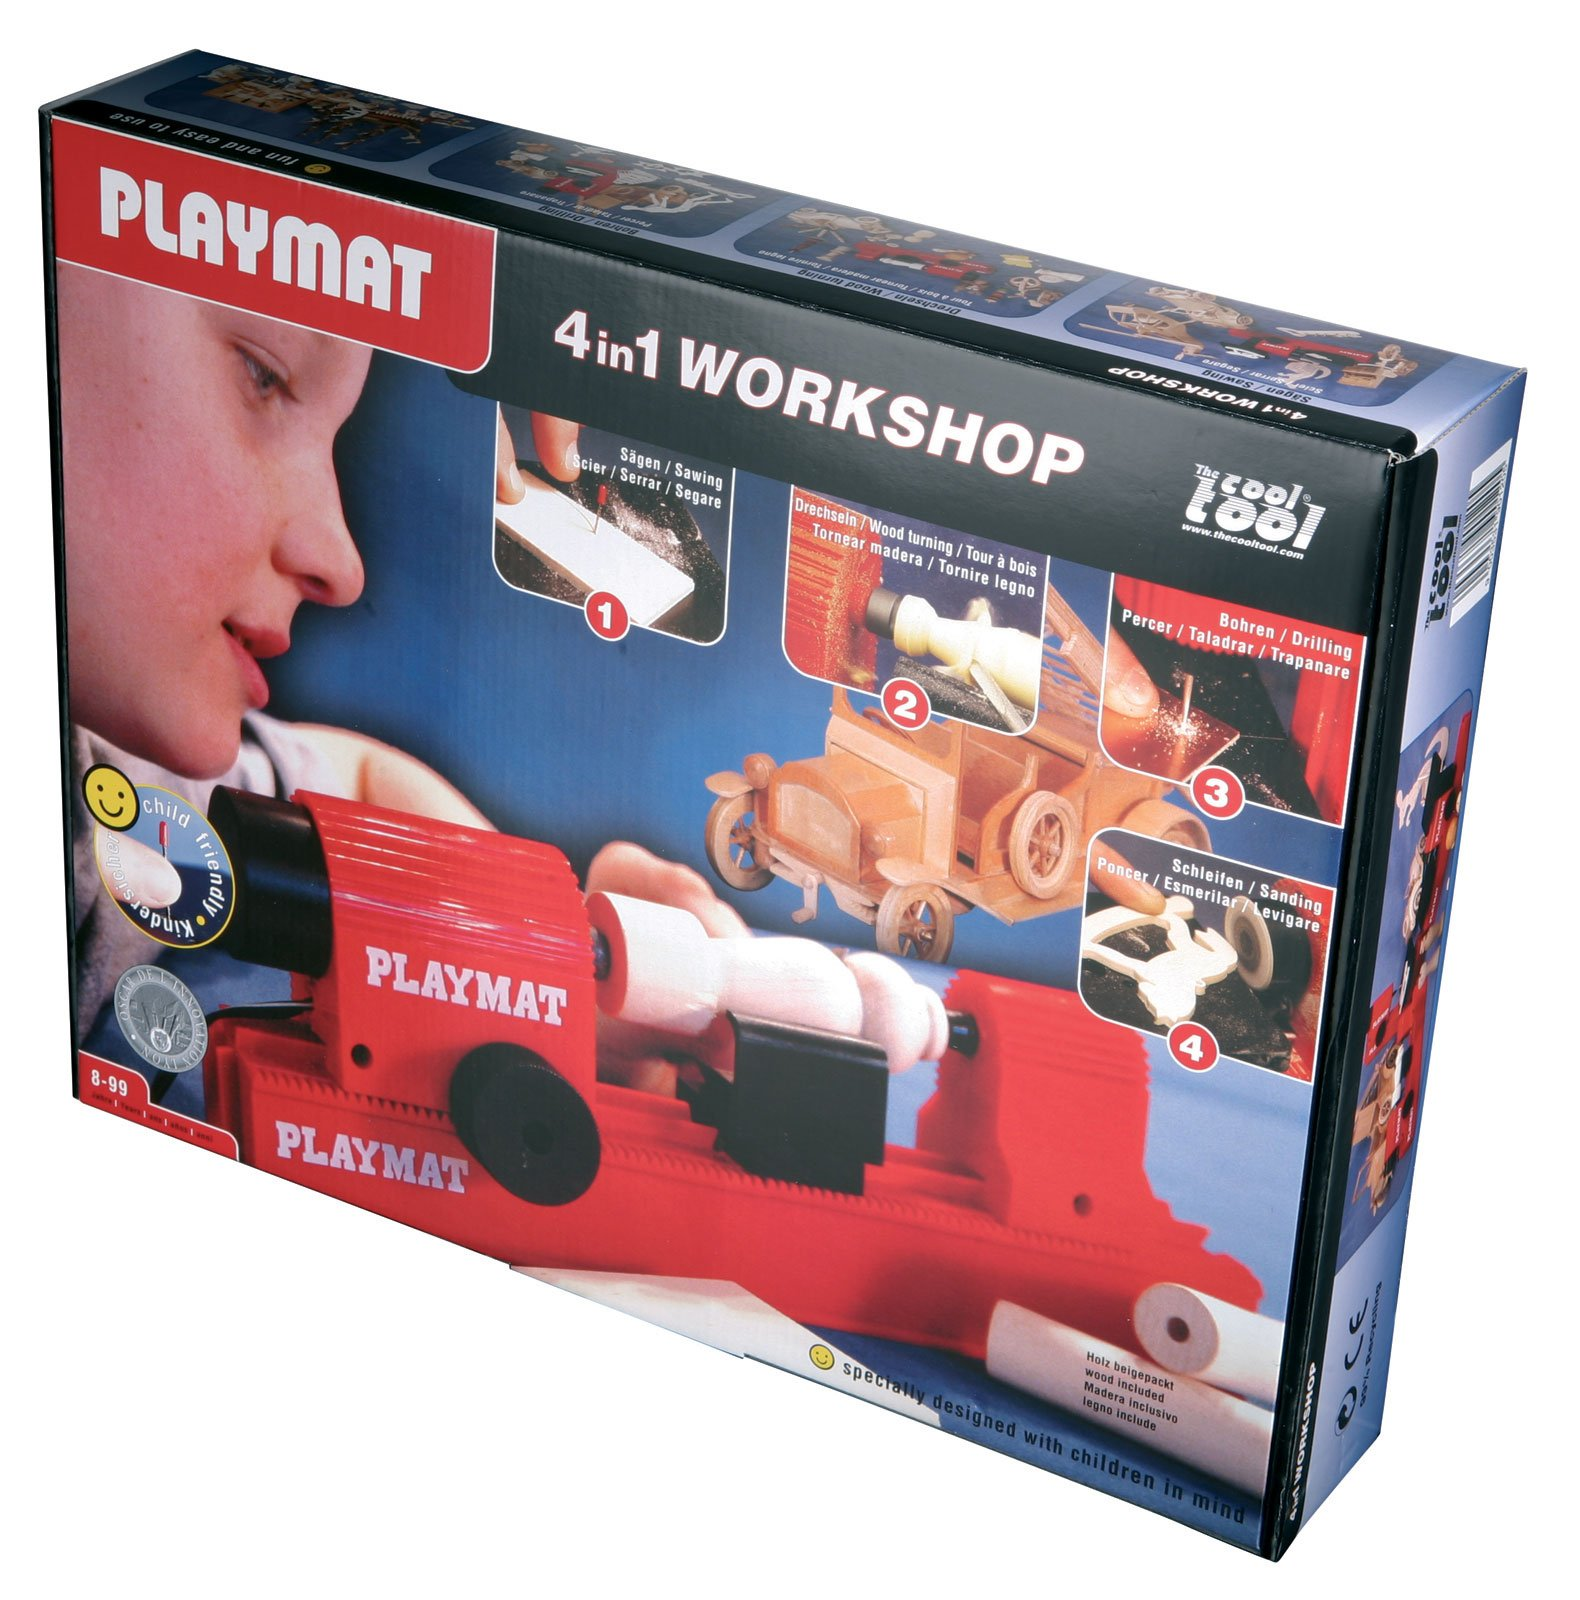 The Cool Tool Playmat 4 in 1 Workshop World's Only Child-Friendly Working Jigsaw by The Cool Tool (Image #1)